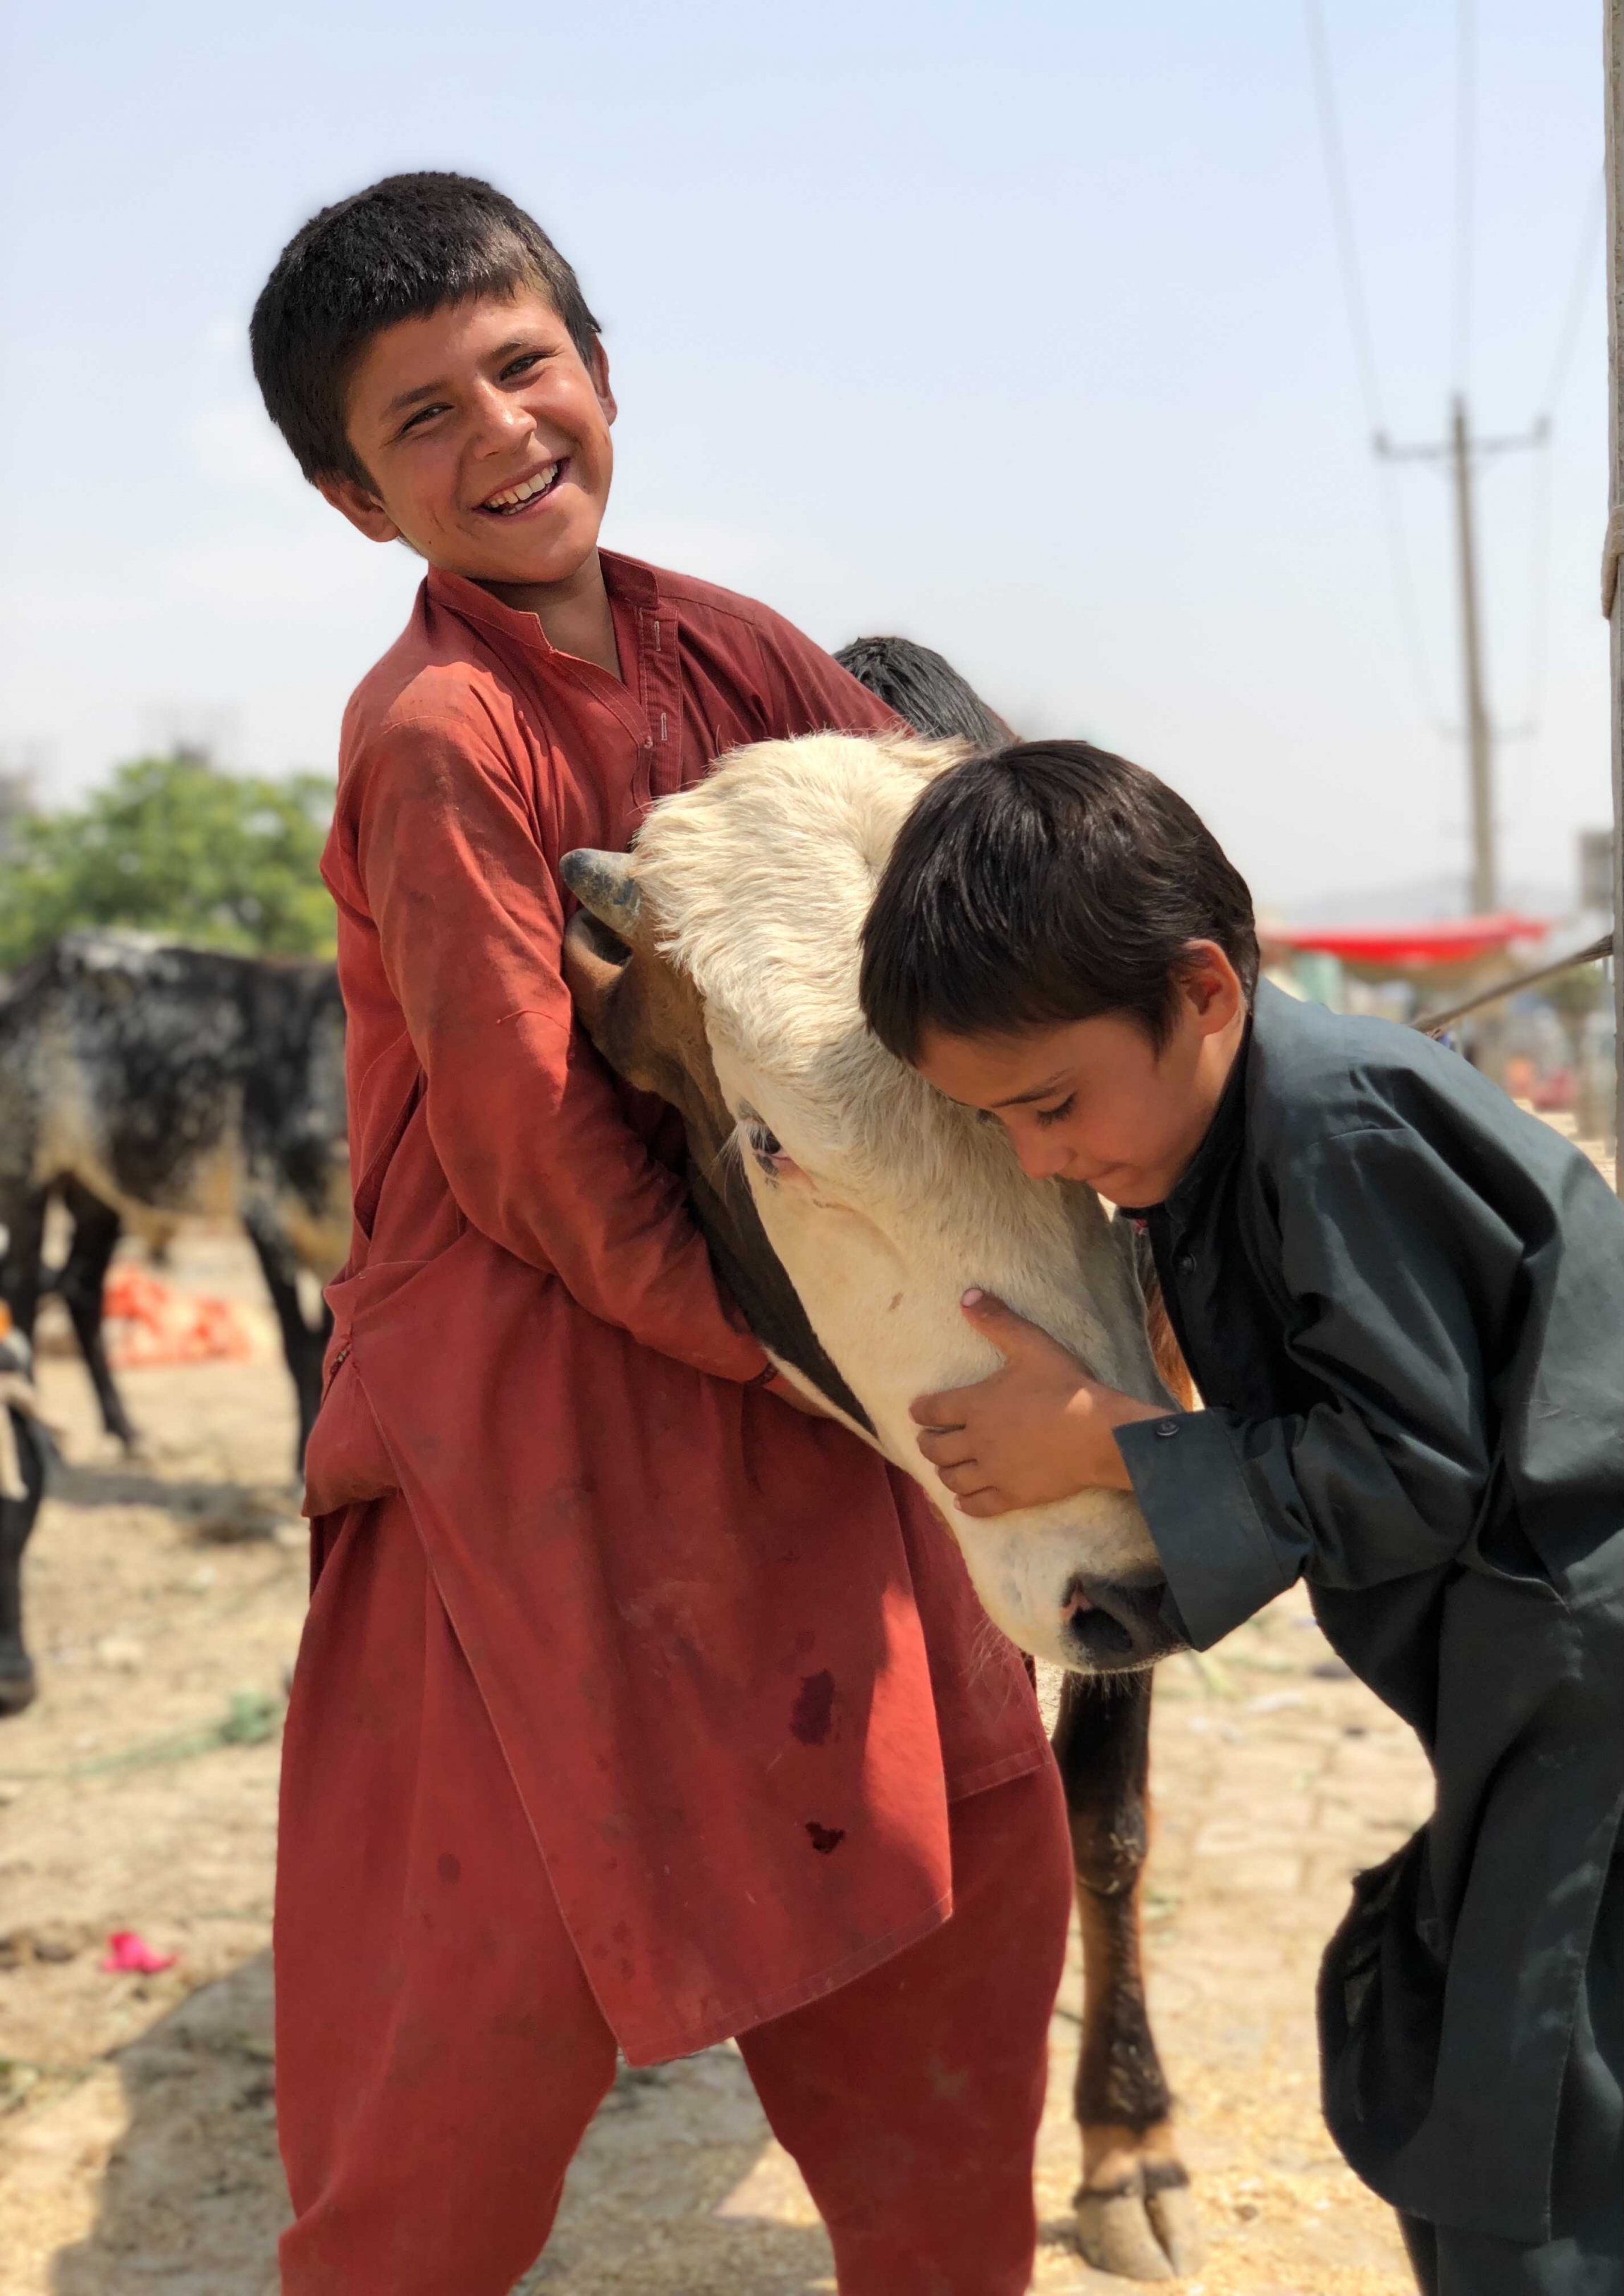 Young boys help out at an open-air livestock market in Kabul, Afghanistan. As residents celebrated Eid al-Adha (or Feast of Sacrifice) a rocket attack targeted the presidential palace.